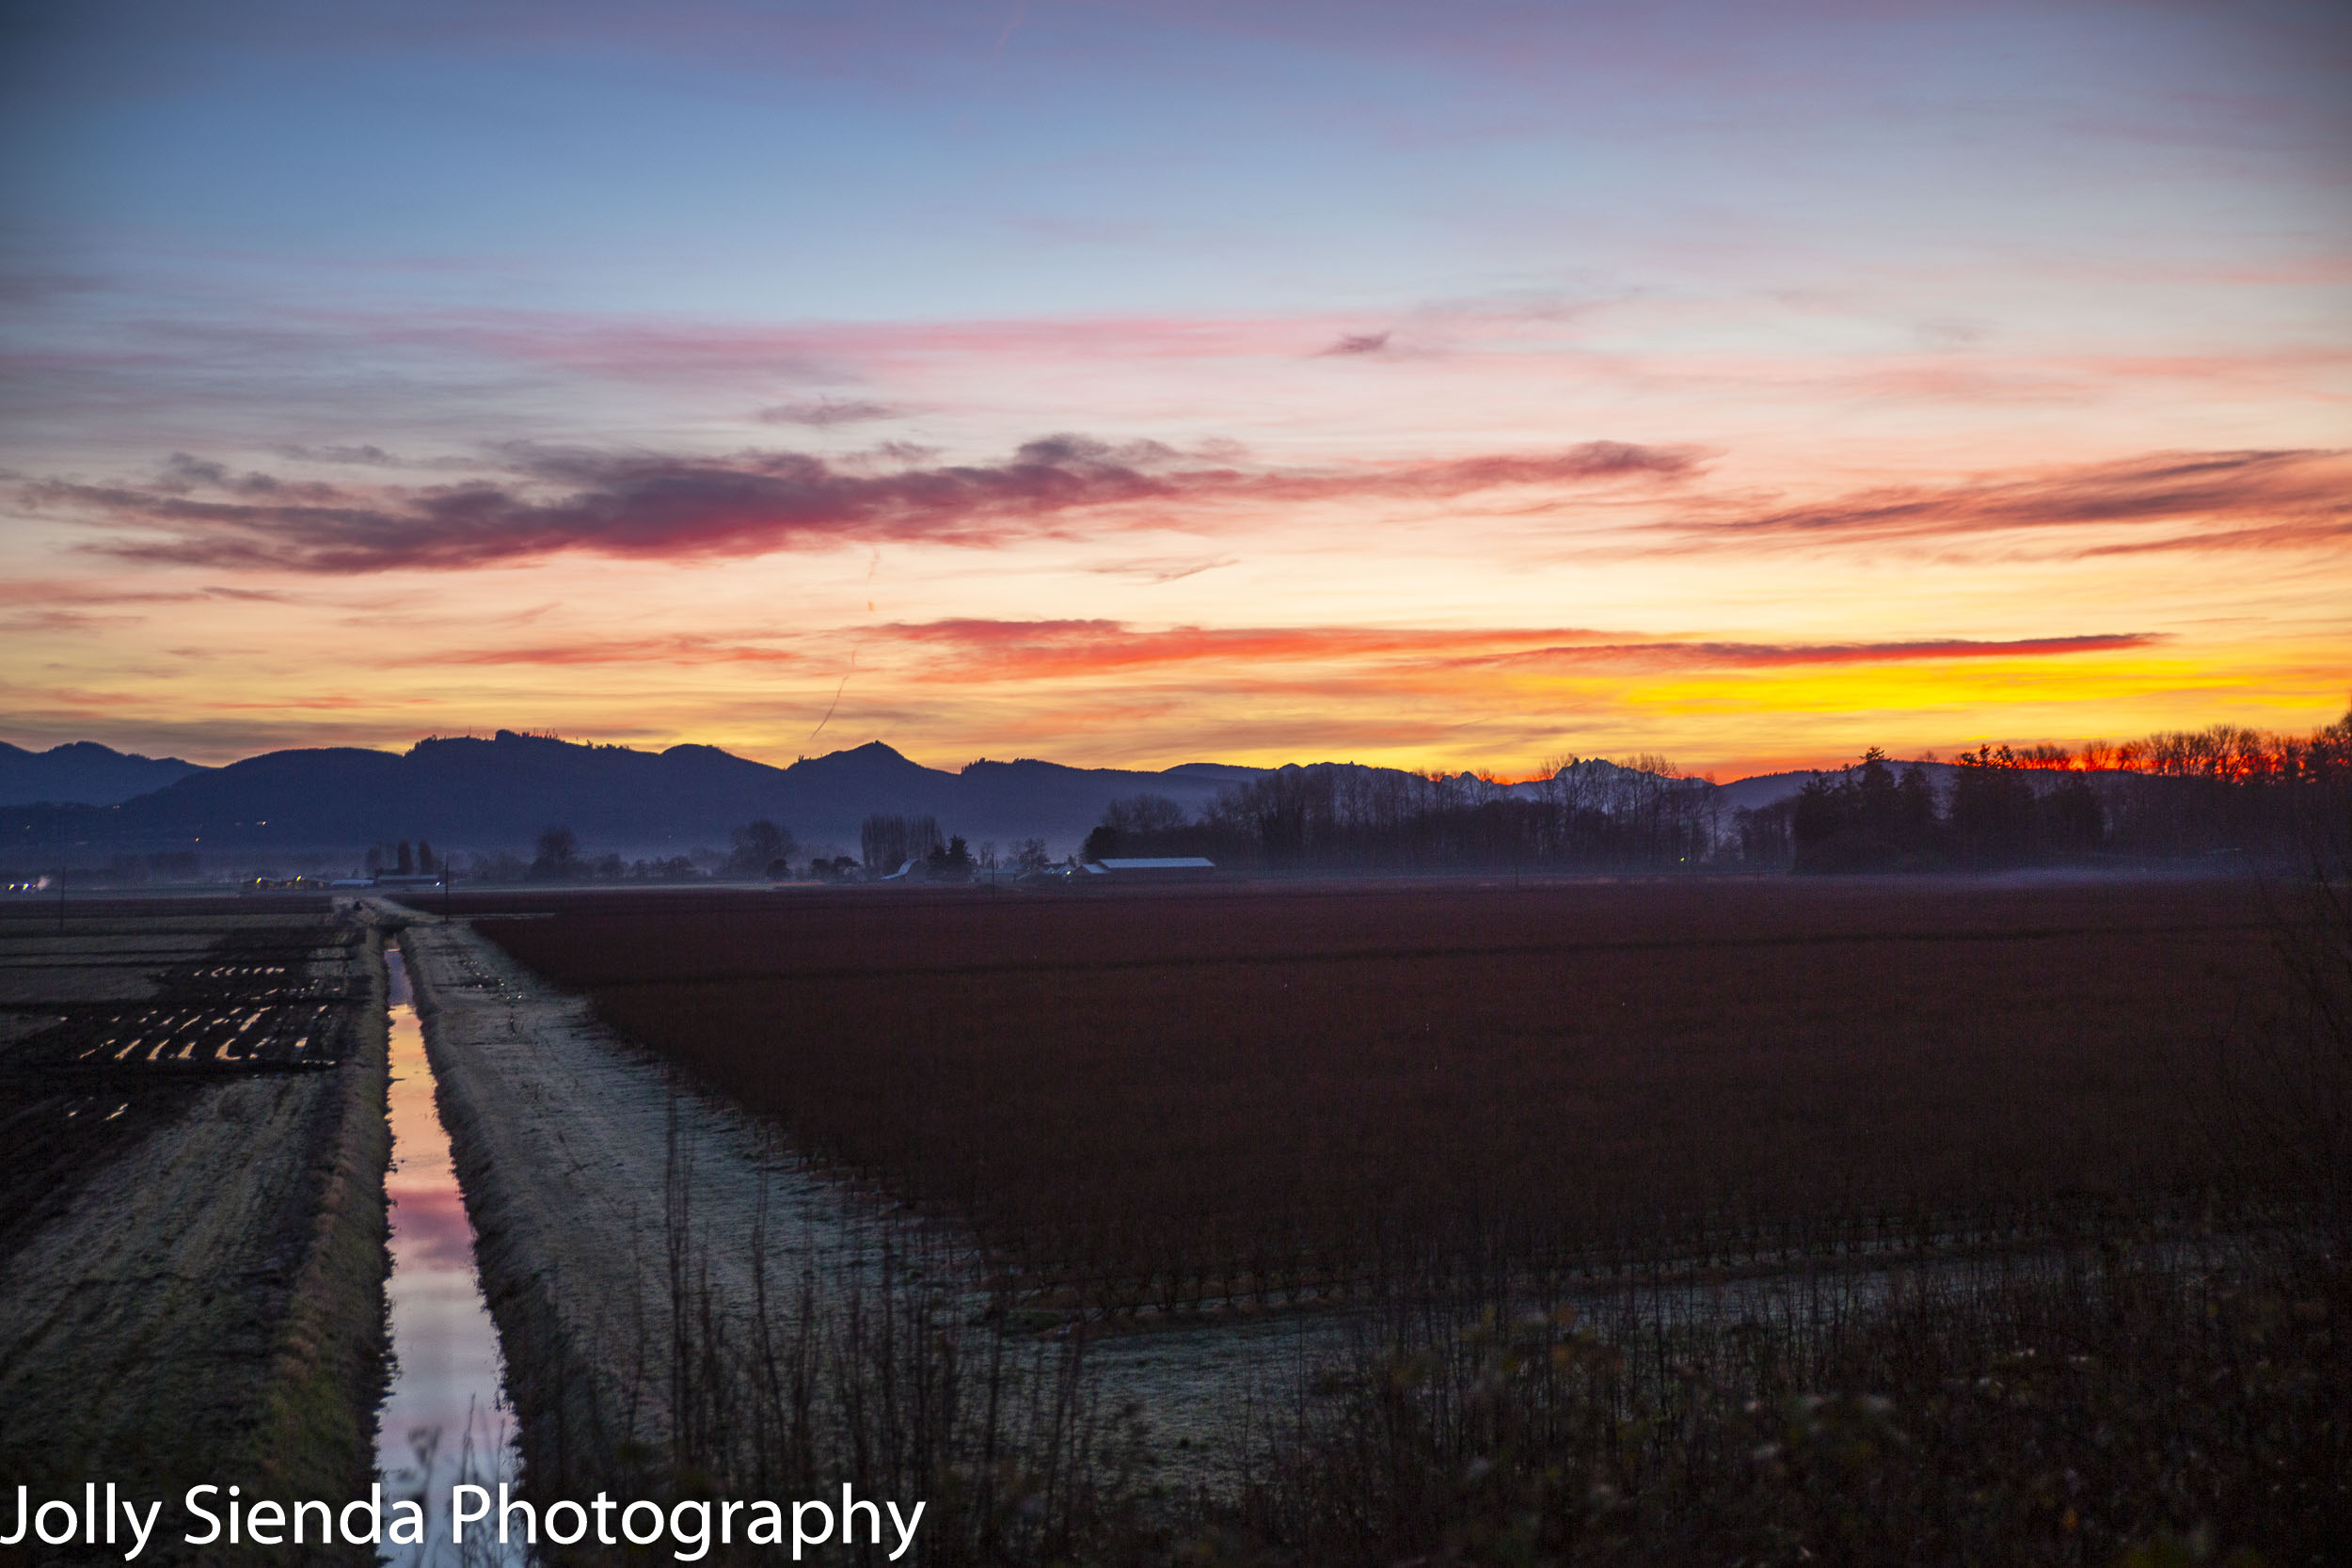 8:29 am, January 12, 2019, Winter sunrise over a blueberry field at the Skagit Valley